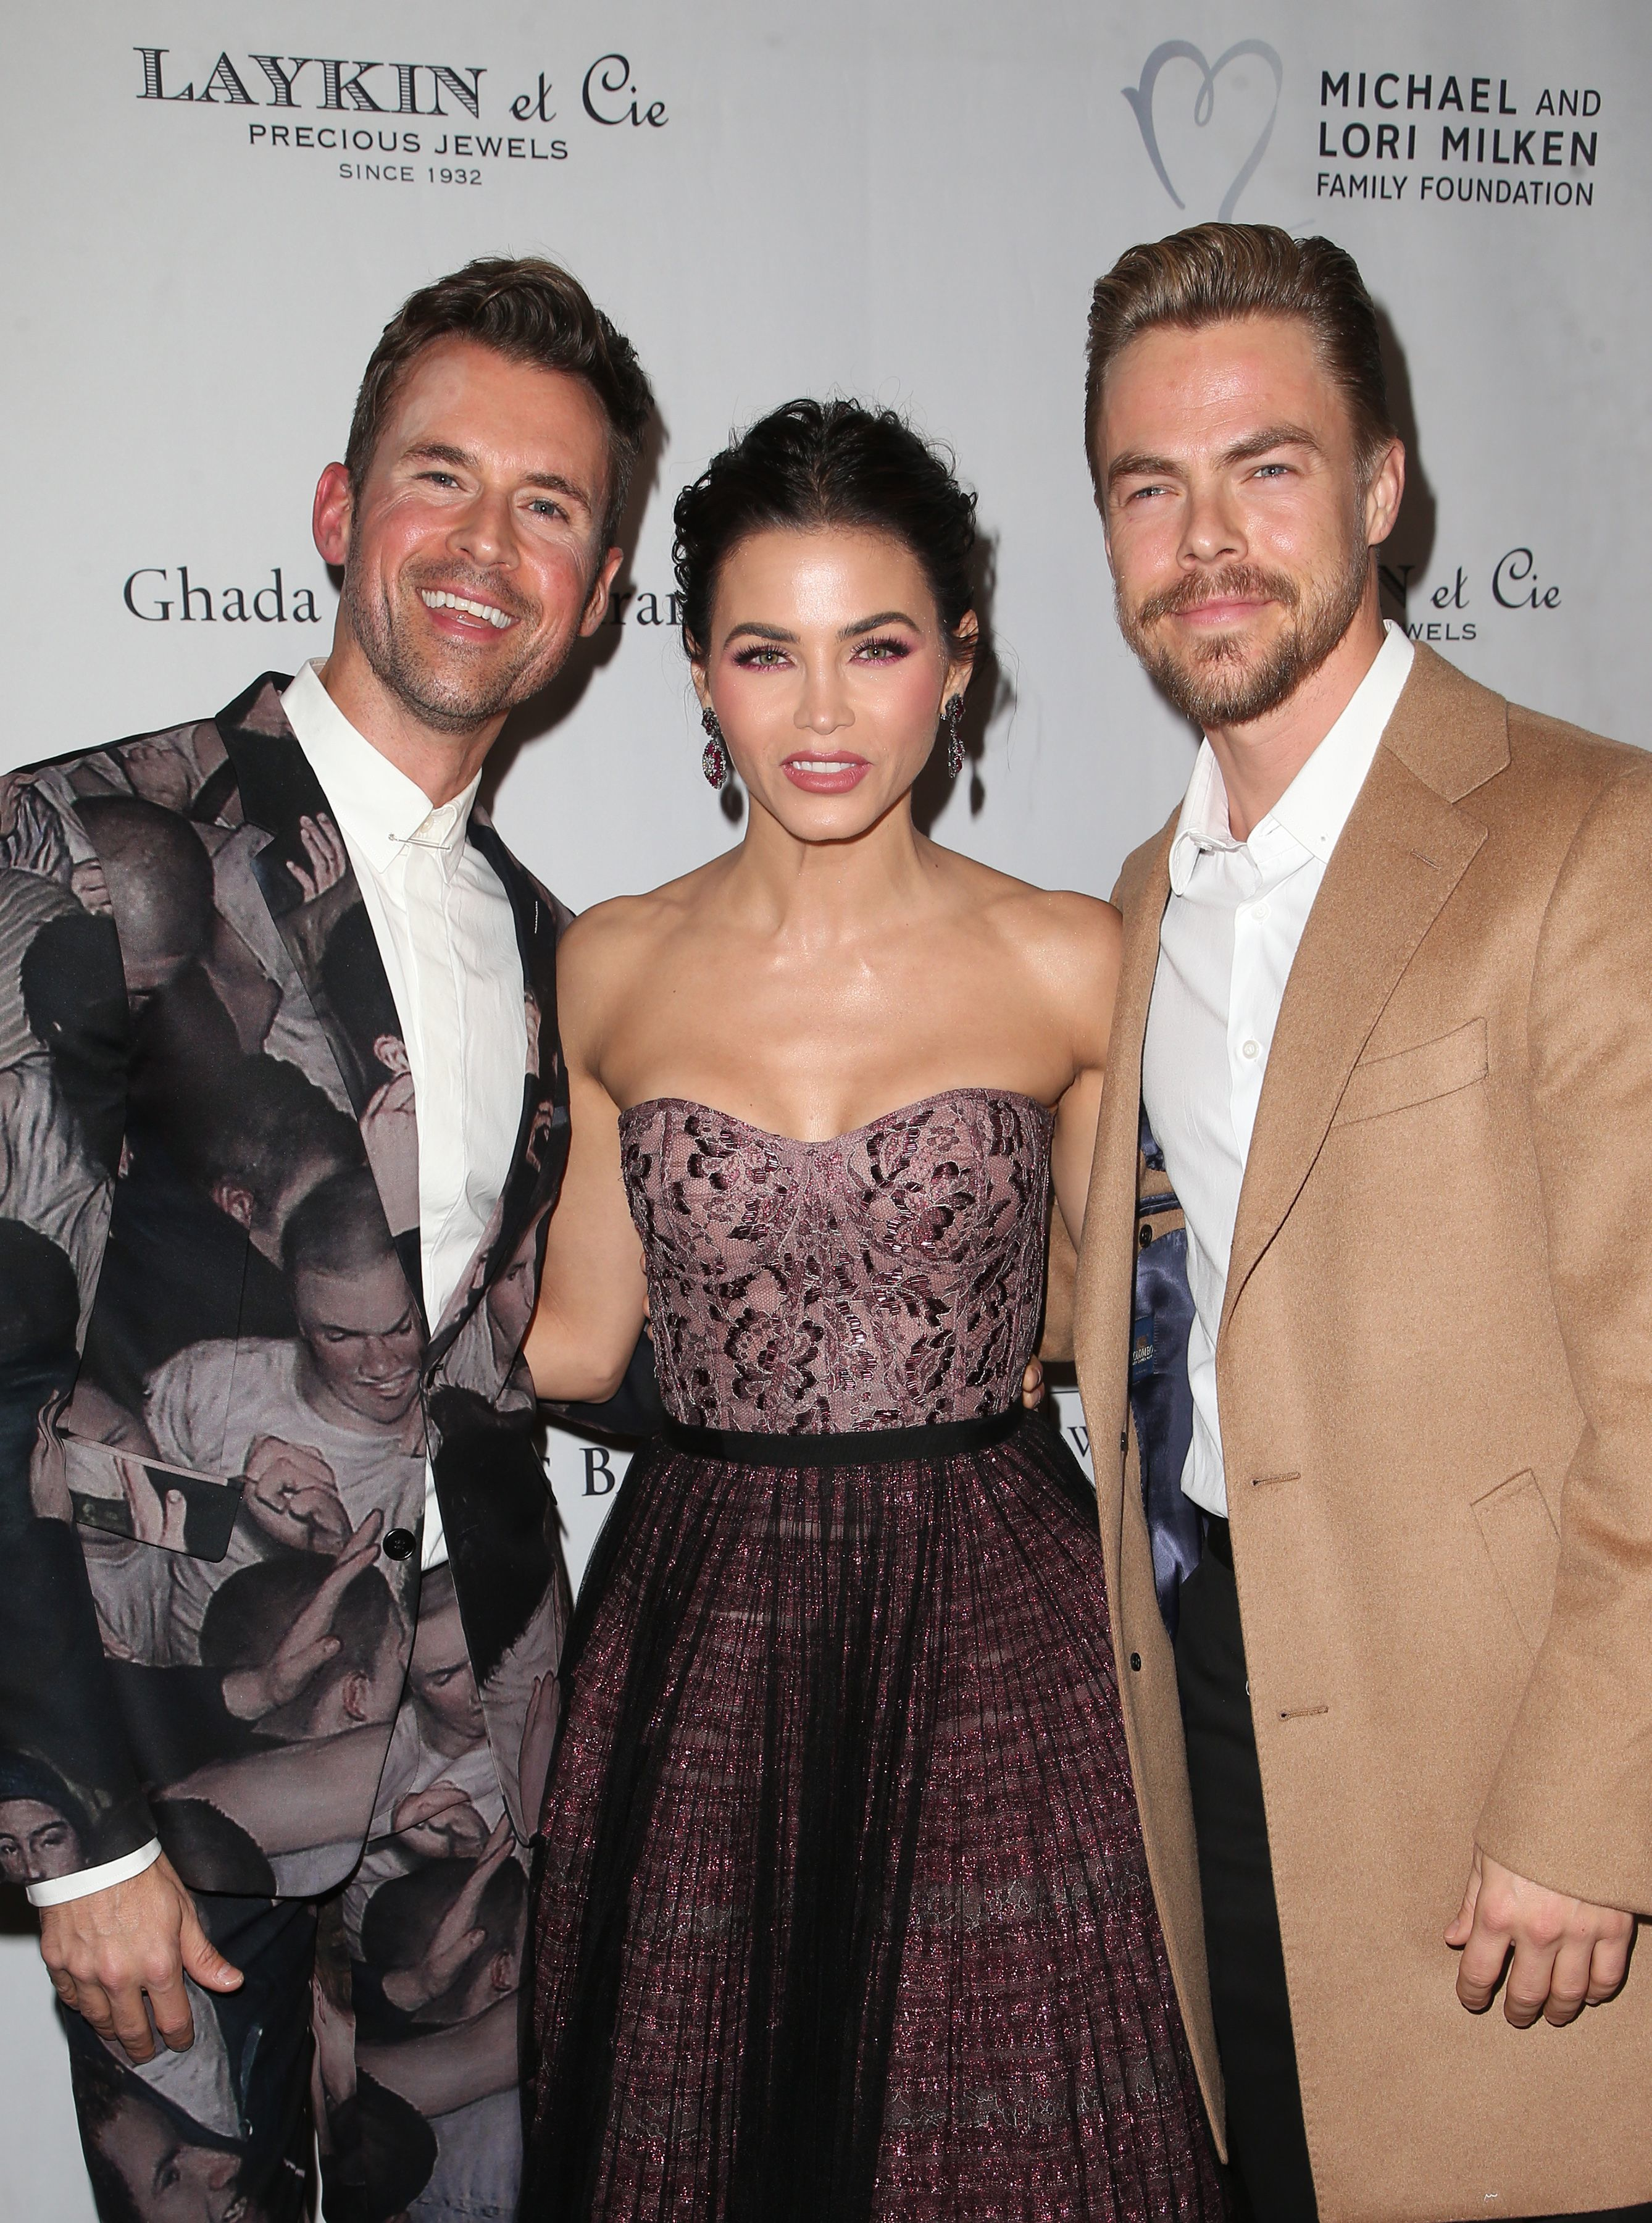 Brad Goreski, Jenna Dewan, and Derek Hough appear at the Los Angeles Ballet Gala on Feb. 24, 2018.